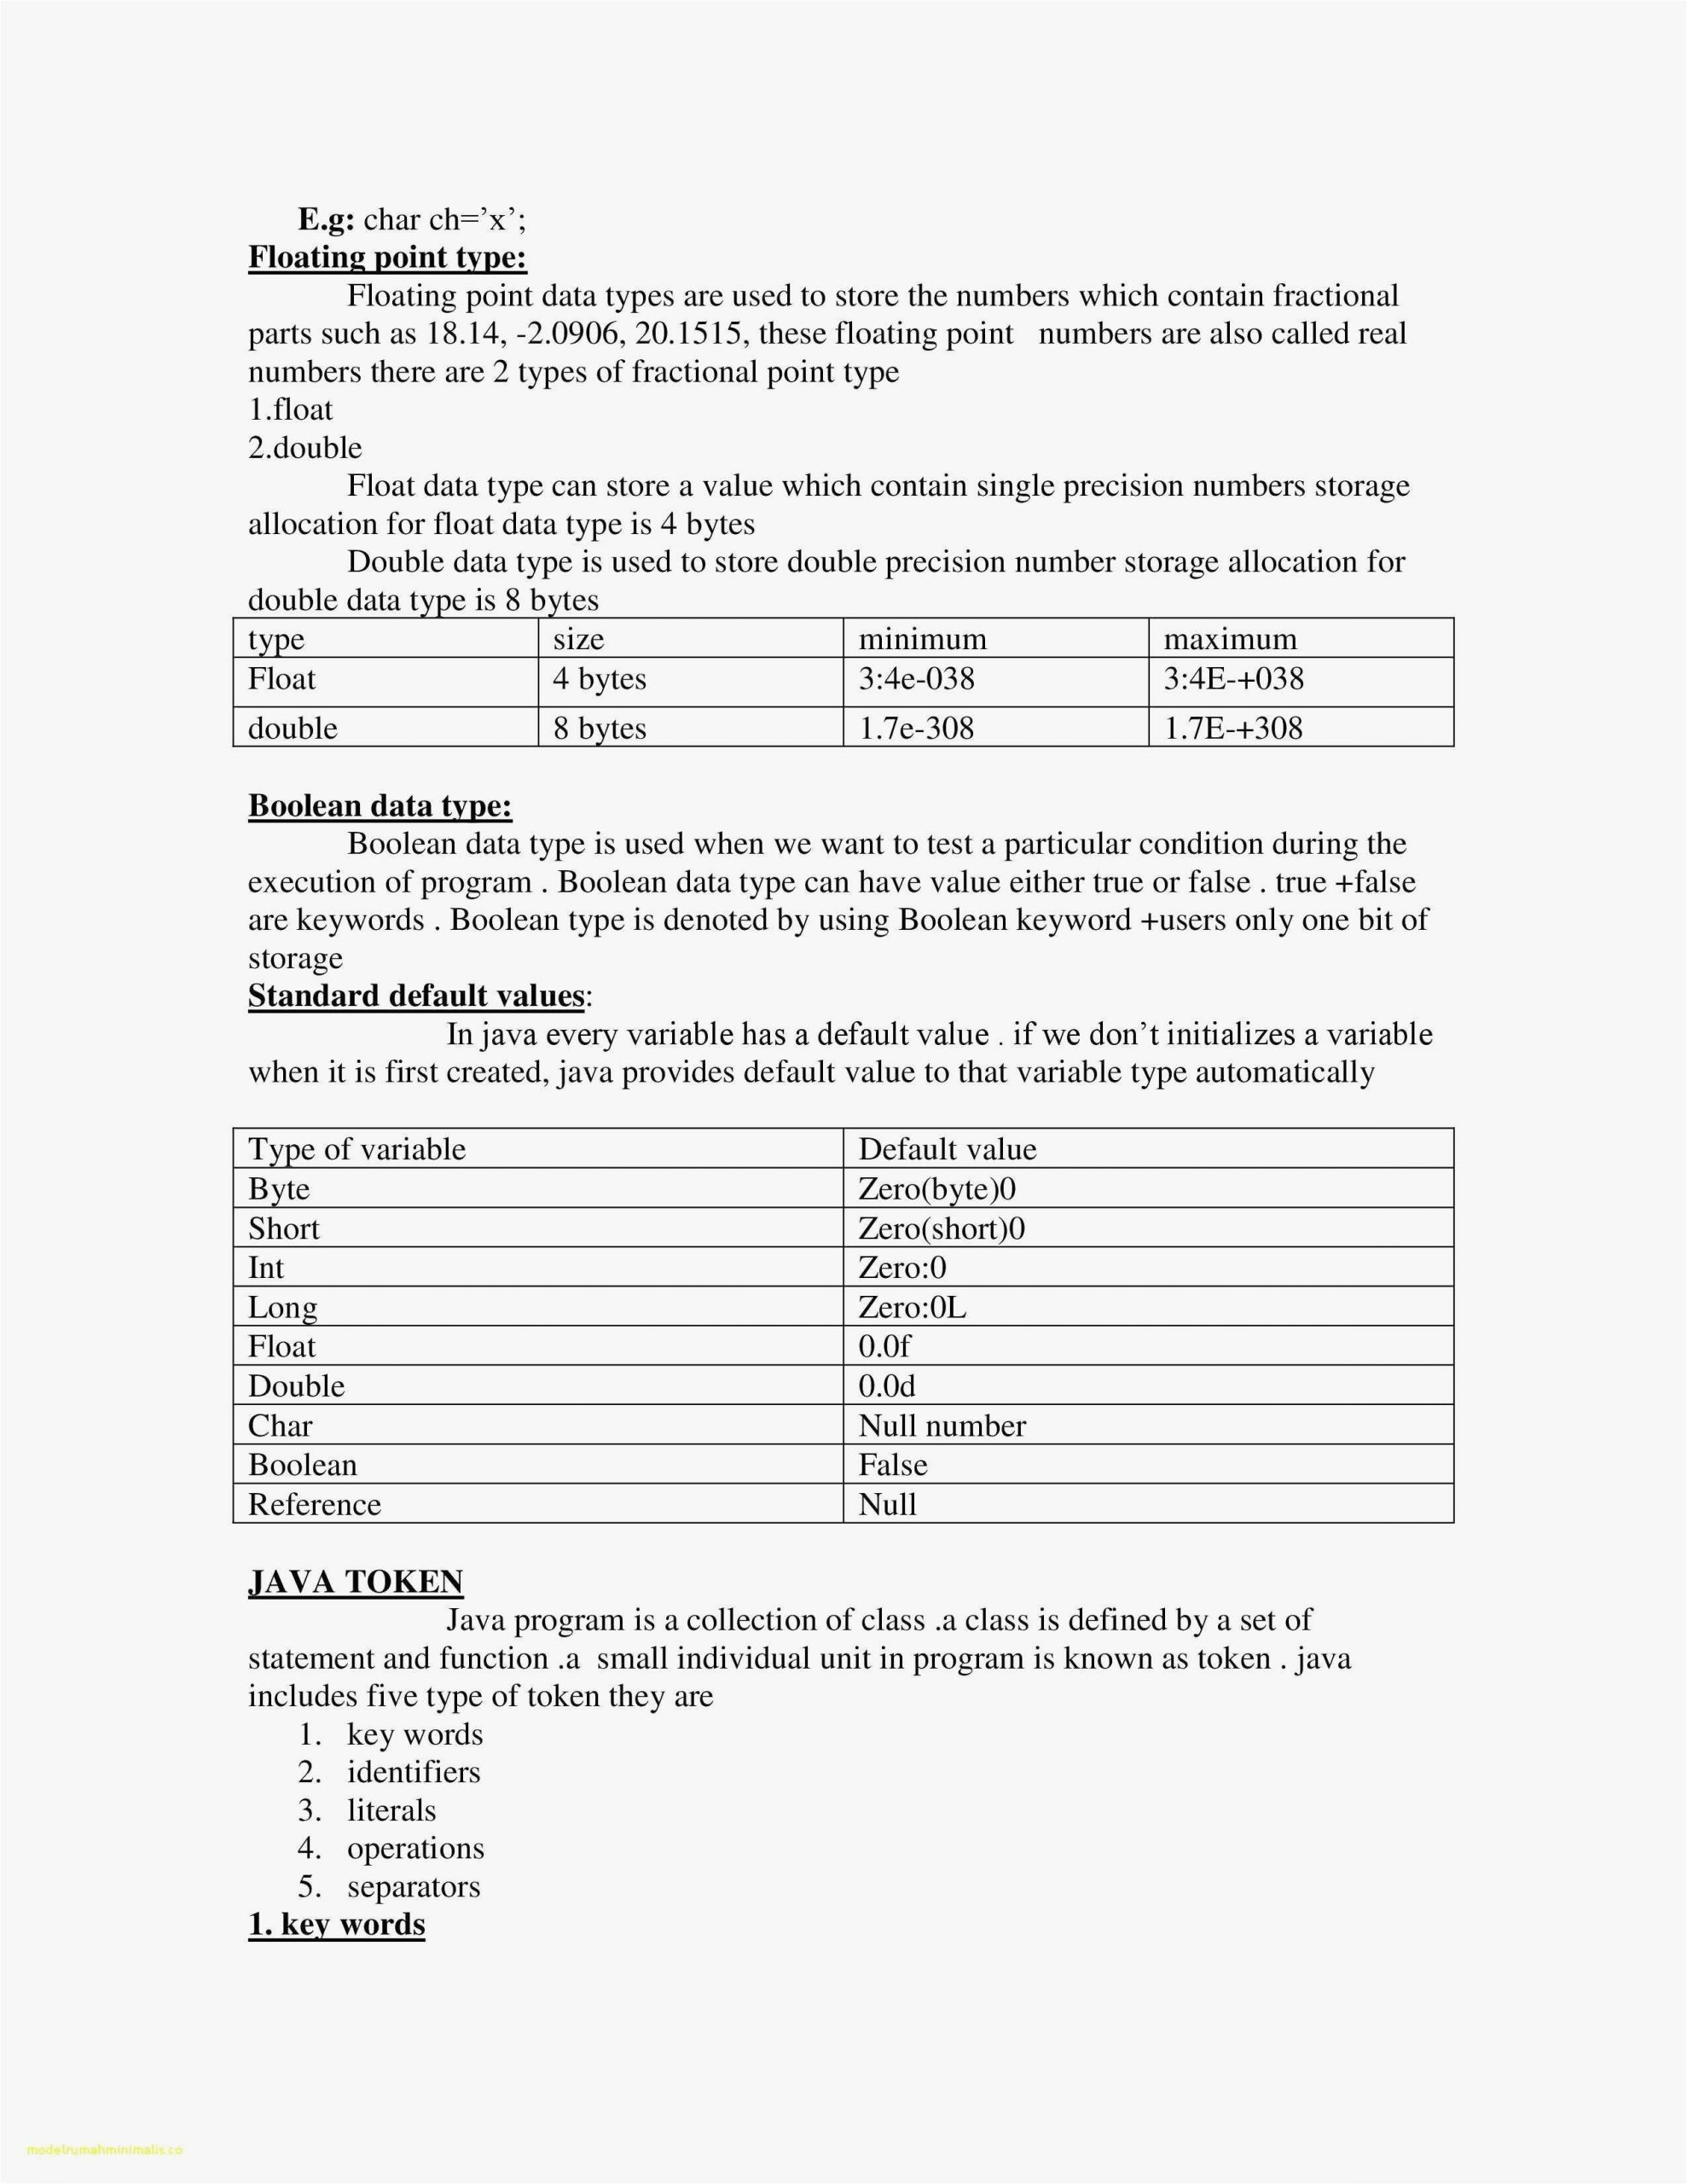 hight resolution of 5 Free Math Worksheets Second Grade 2 Subtraction Subtracting 1 Digit From 2  Digit Missing Number No Regrouping - apocalomegaproductions.com